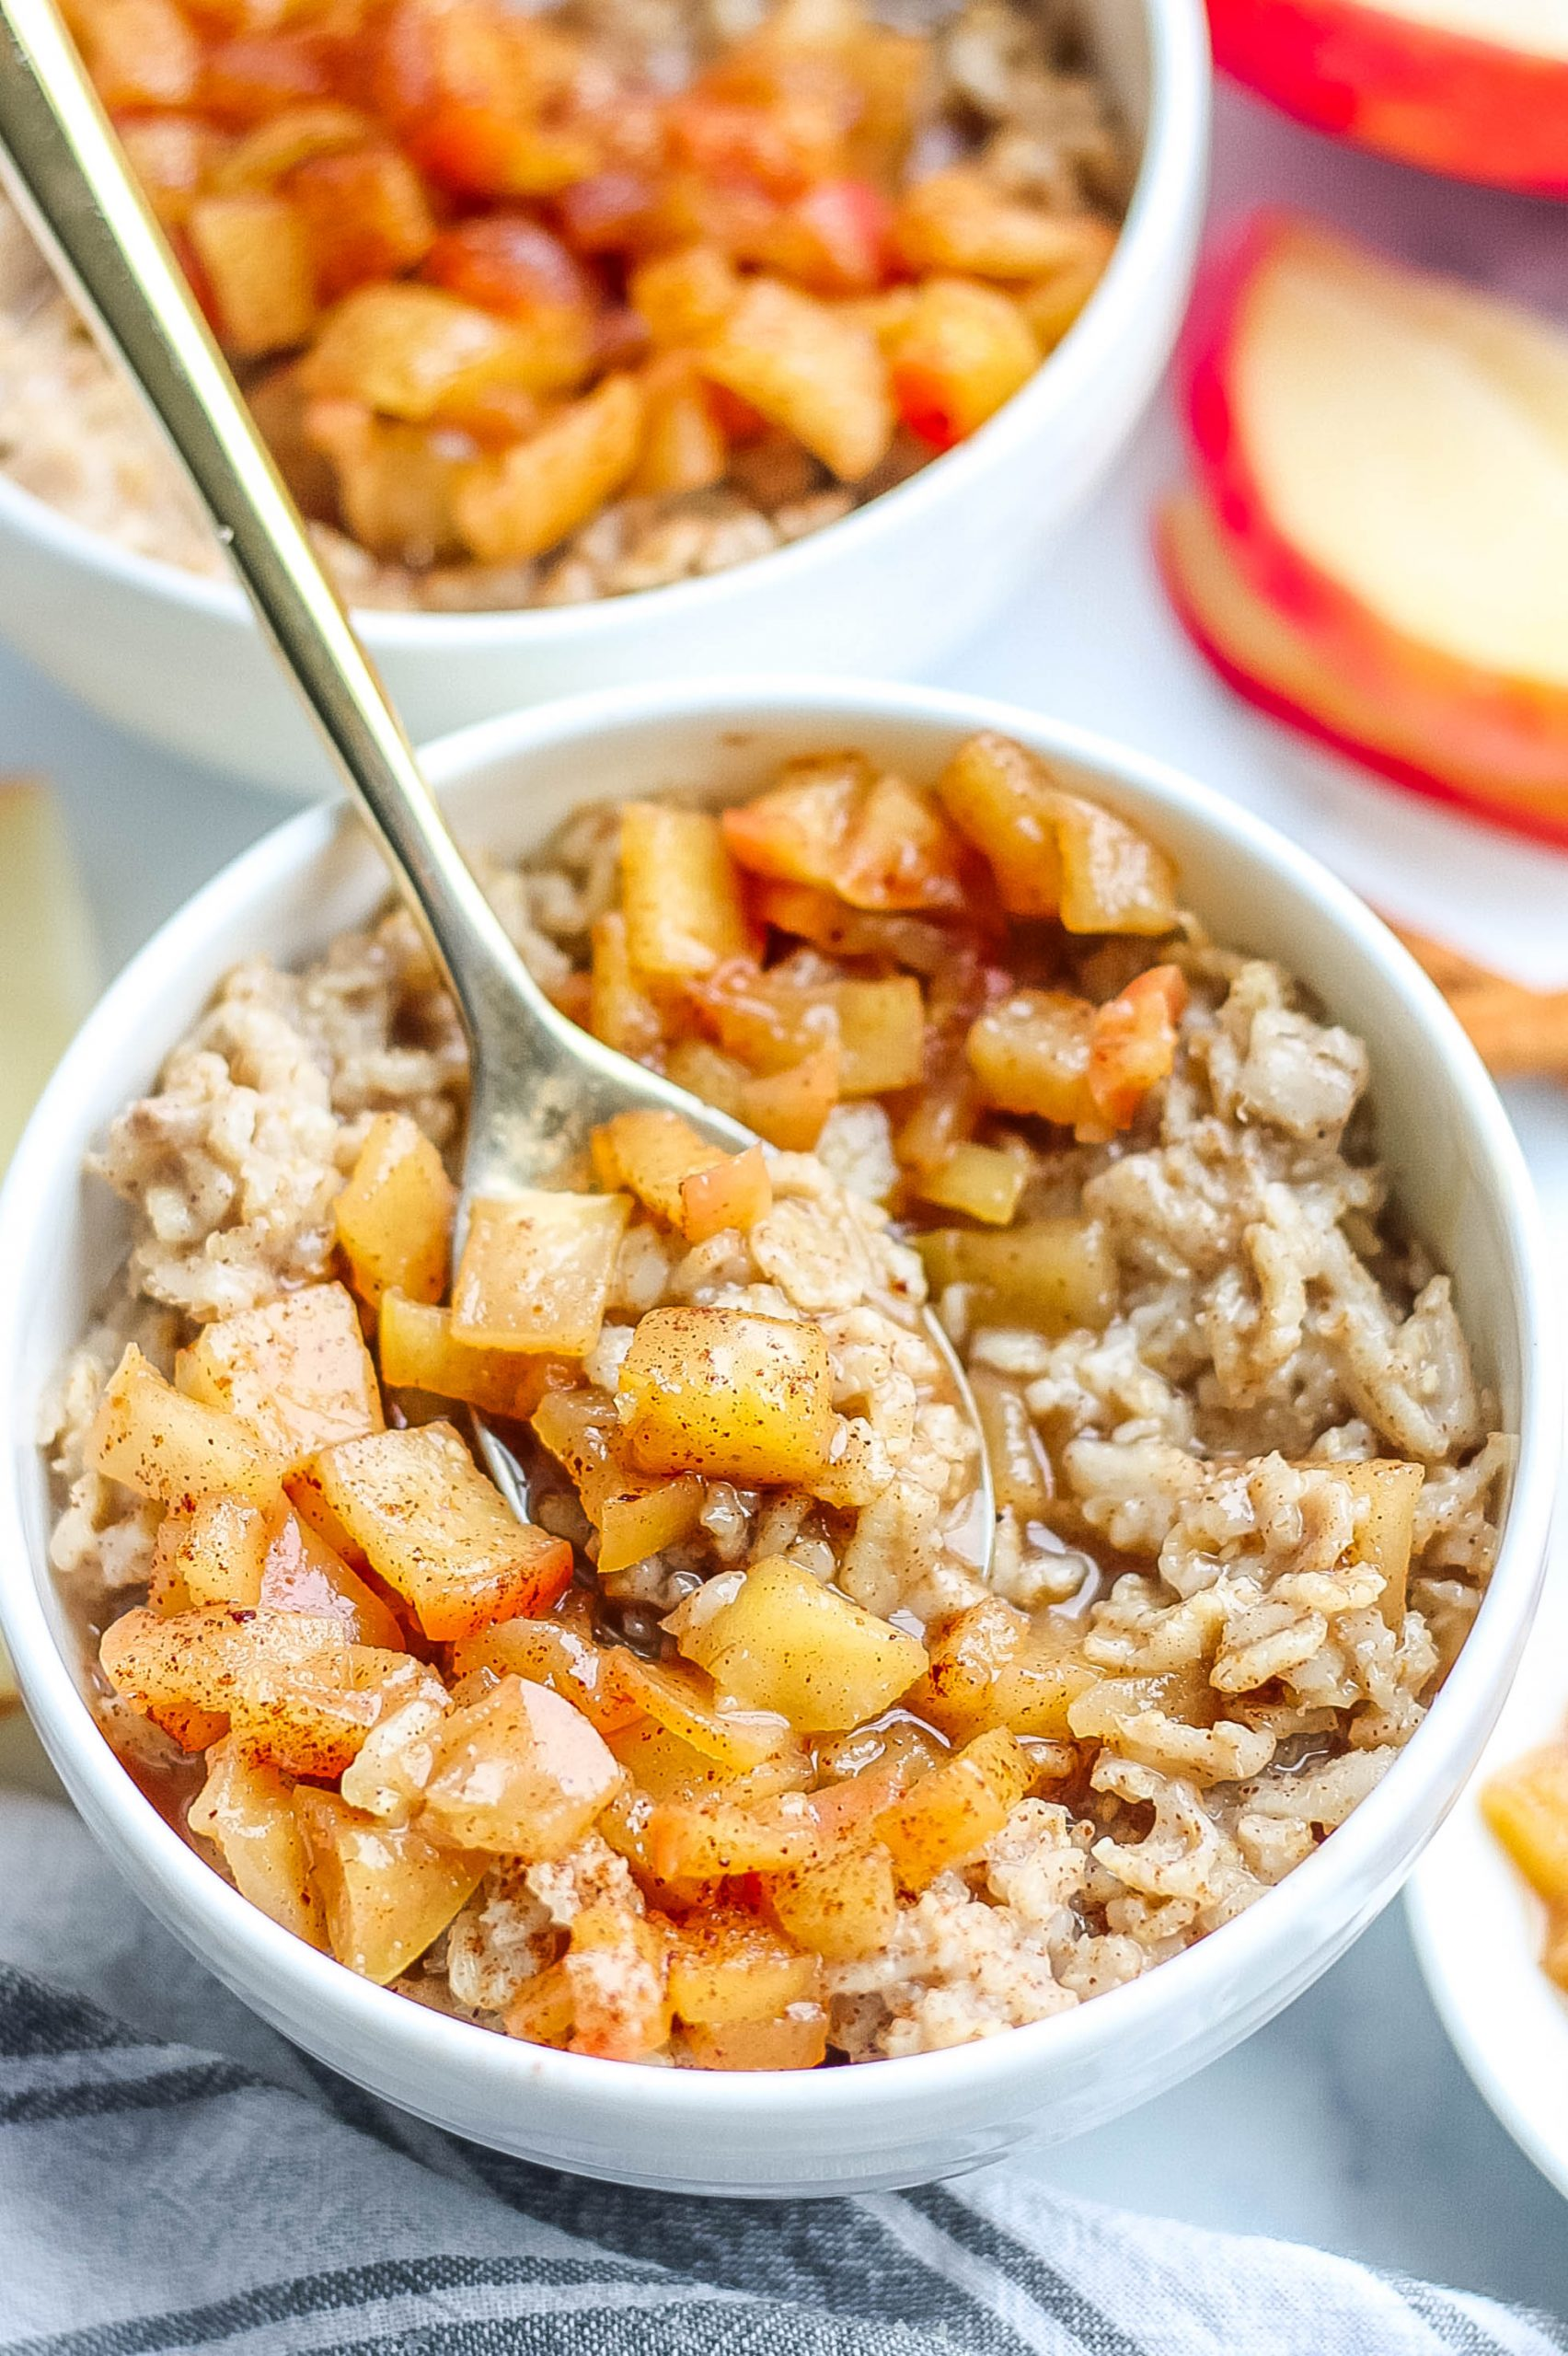 spoon with oatmeal